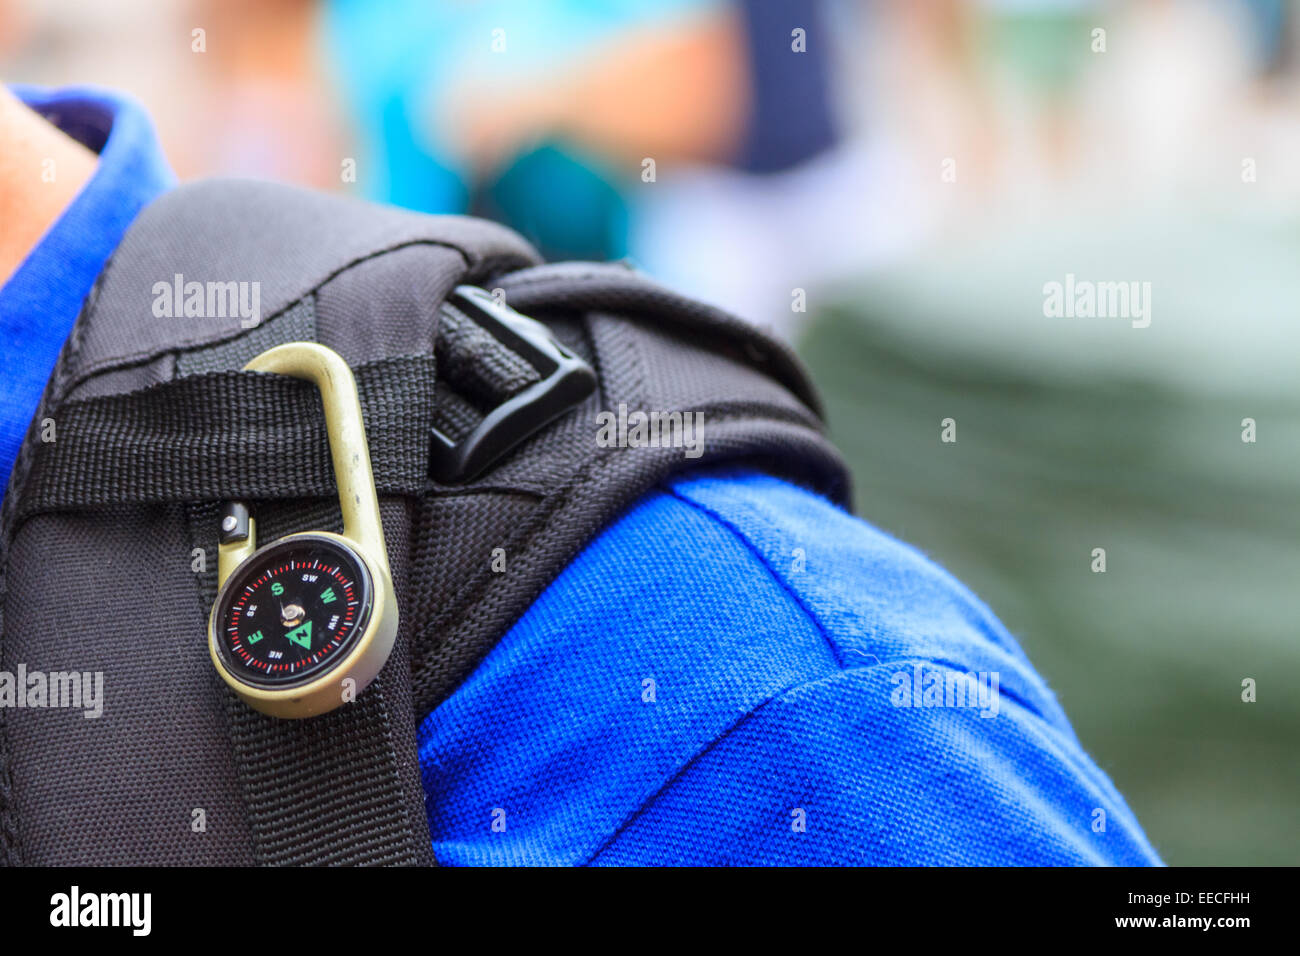 Compass attached on the bagpack of a hiker - Stock Image